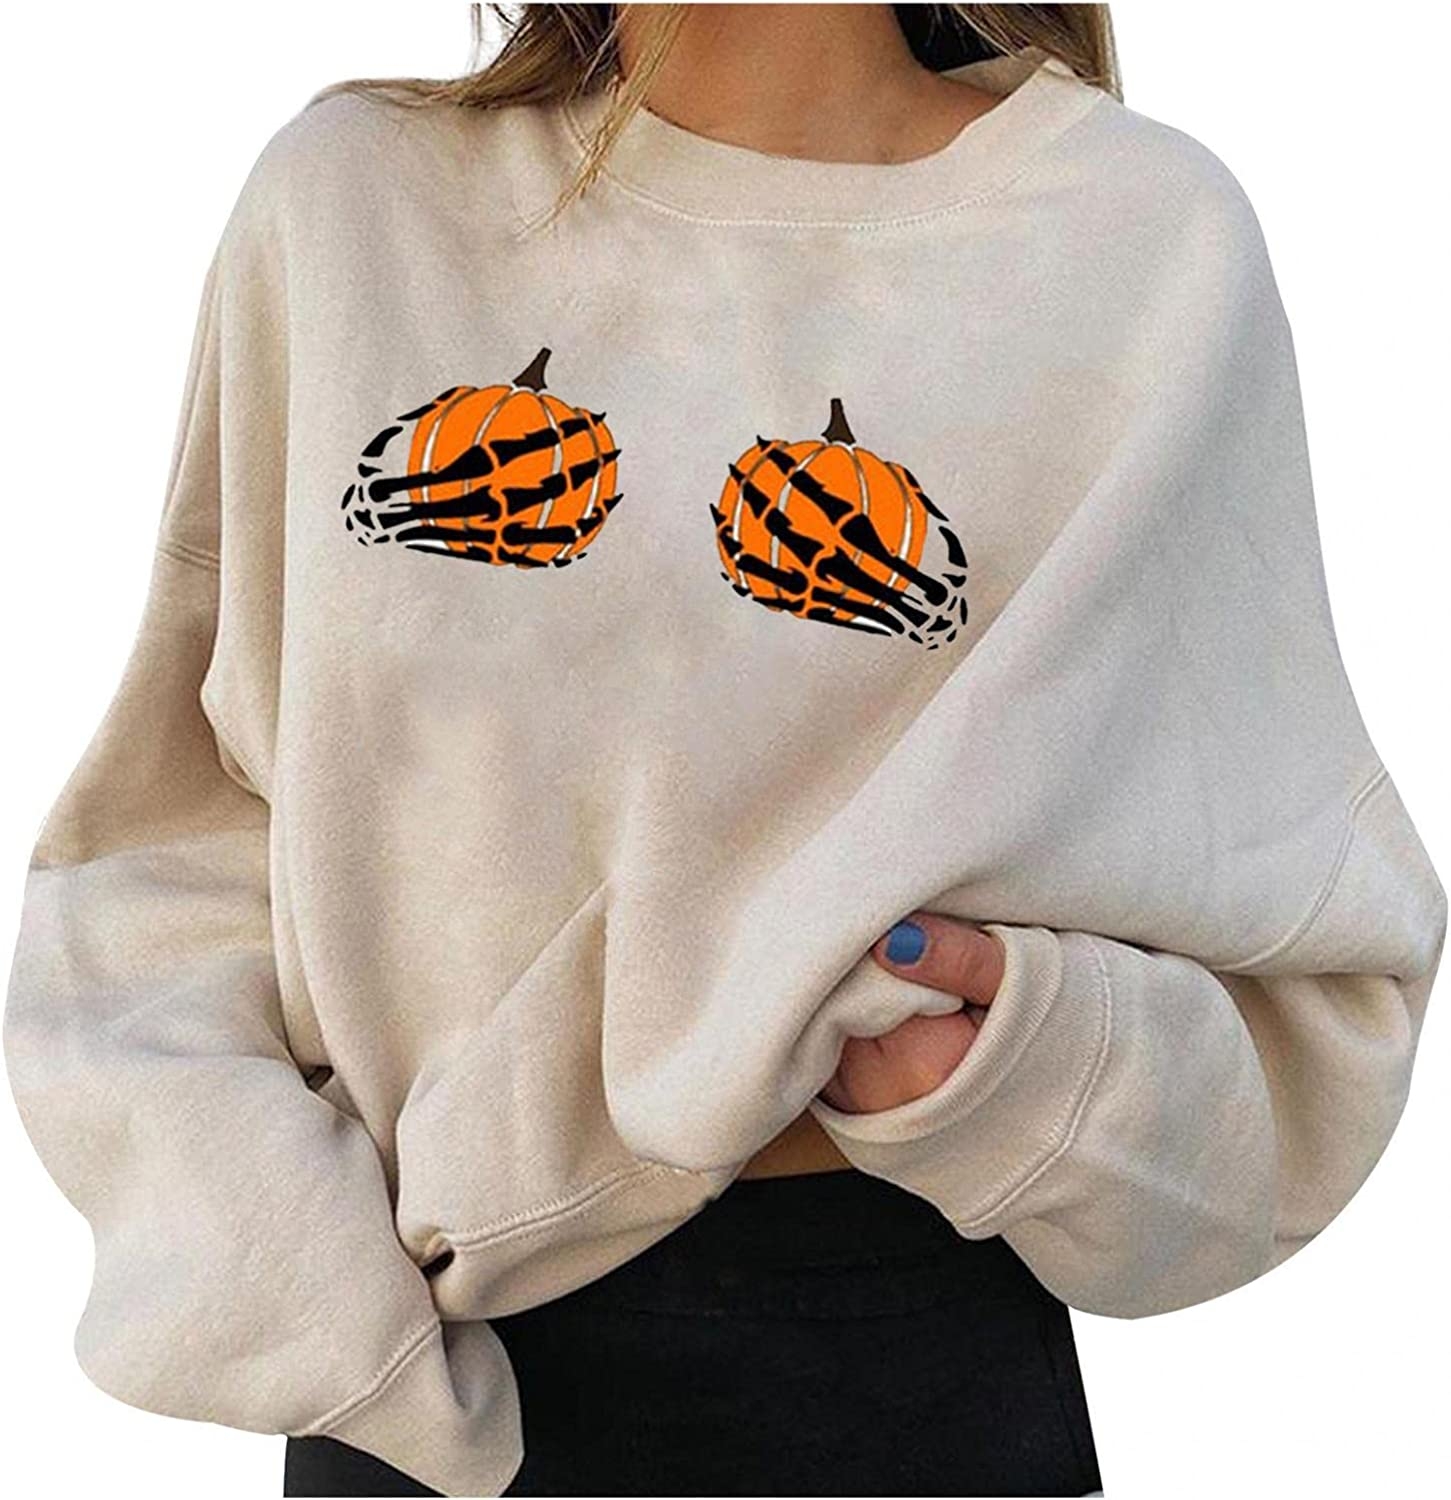 AODONG Halloween Sweatshirts for Women Casual Crewneck Loose Fit Long Sleeves Cute Pumpkin Pullover Sweaters White